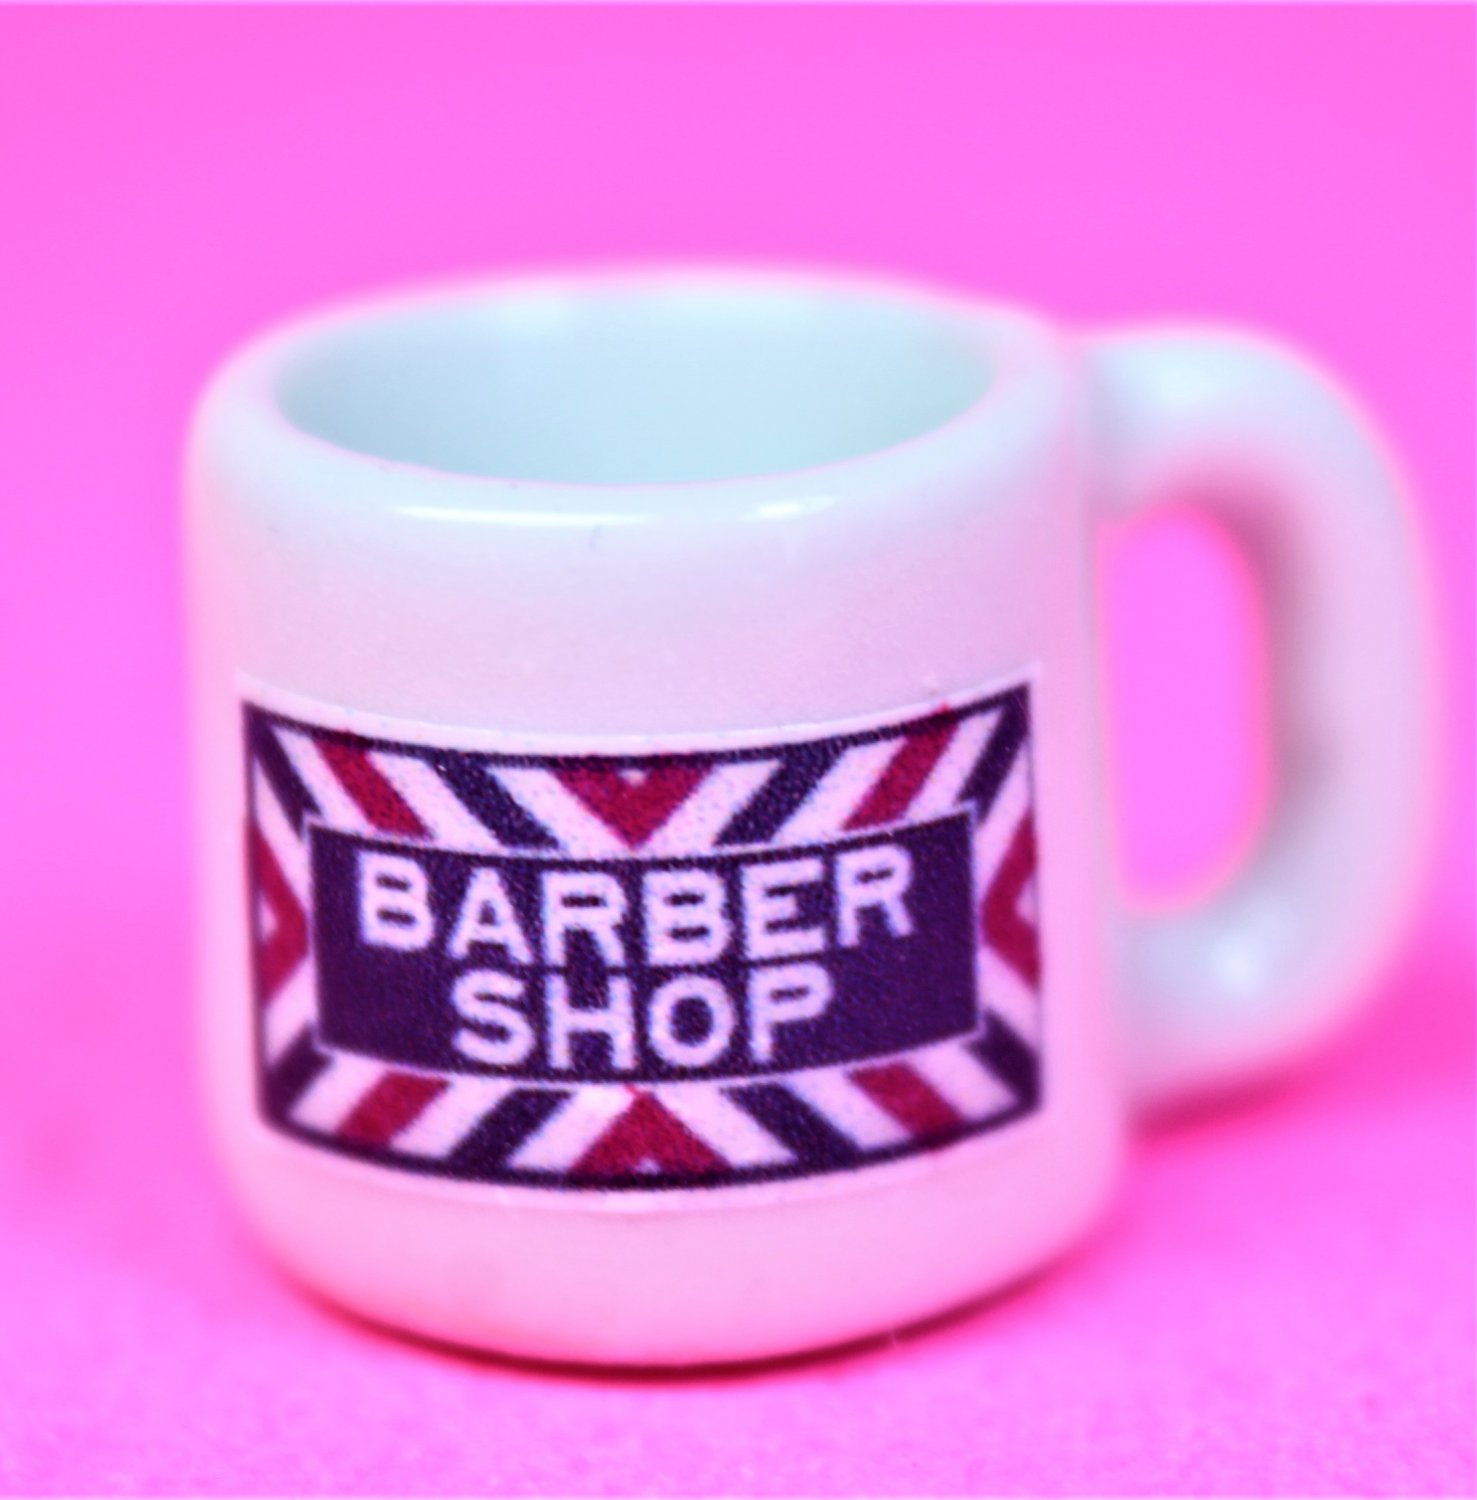 Dollhouse size replica of souvenir barber shop coffee mug